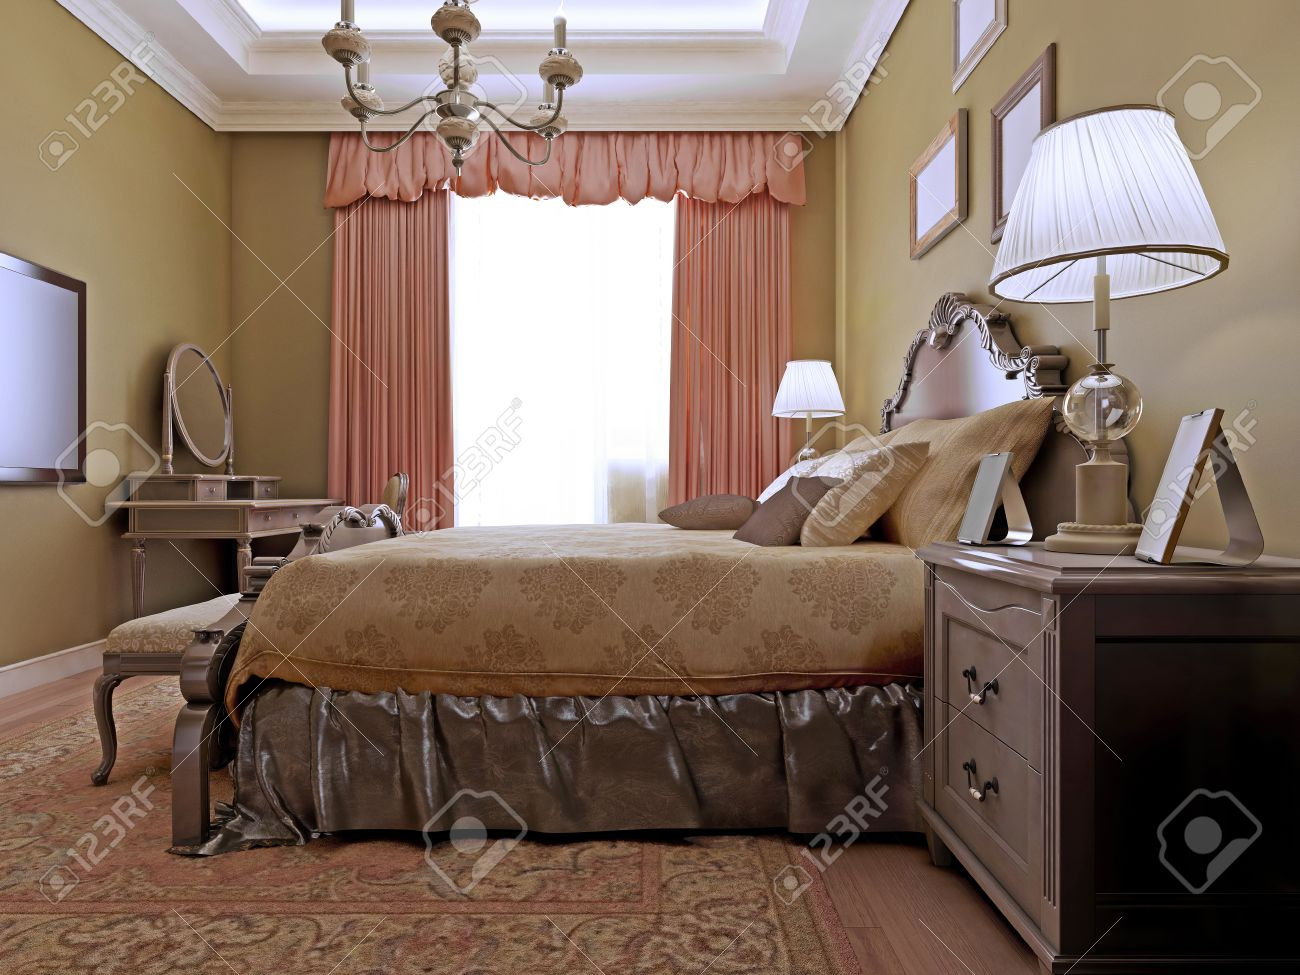 Elegant Room With Dressing Table Made In Soothing Color Combinations.